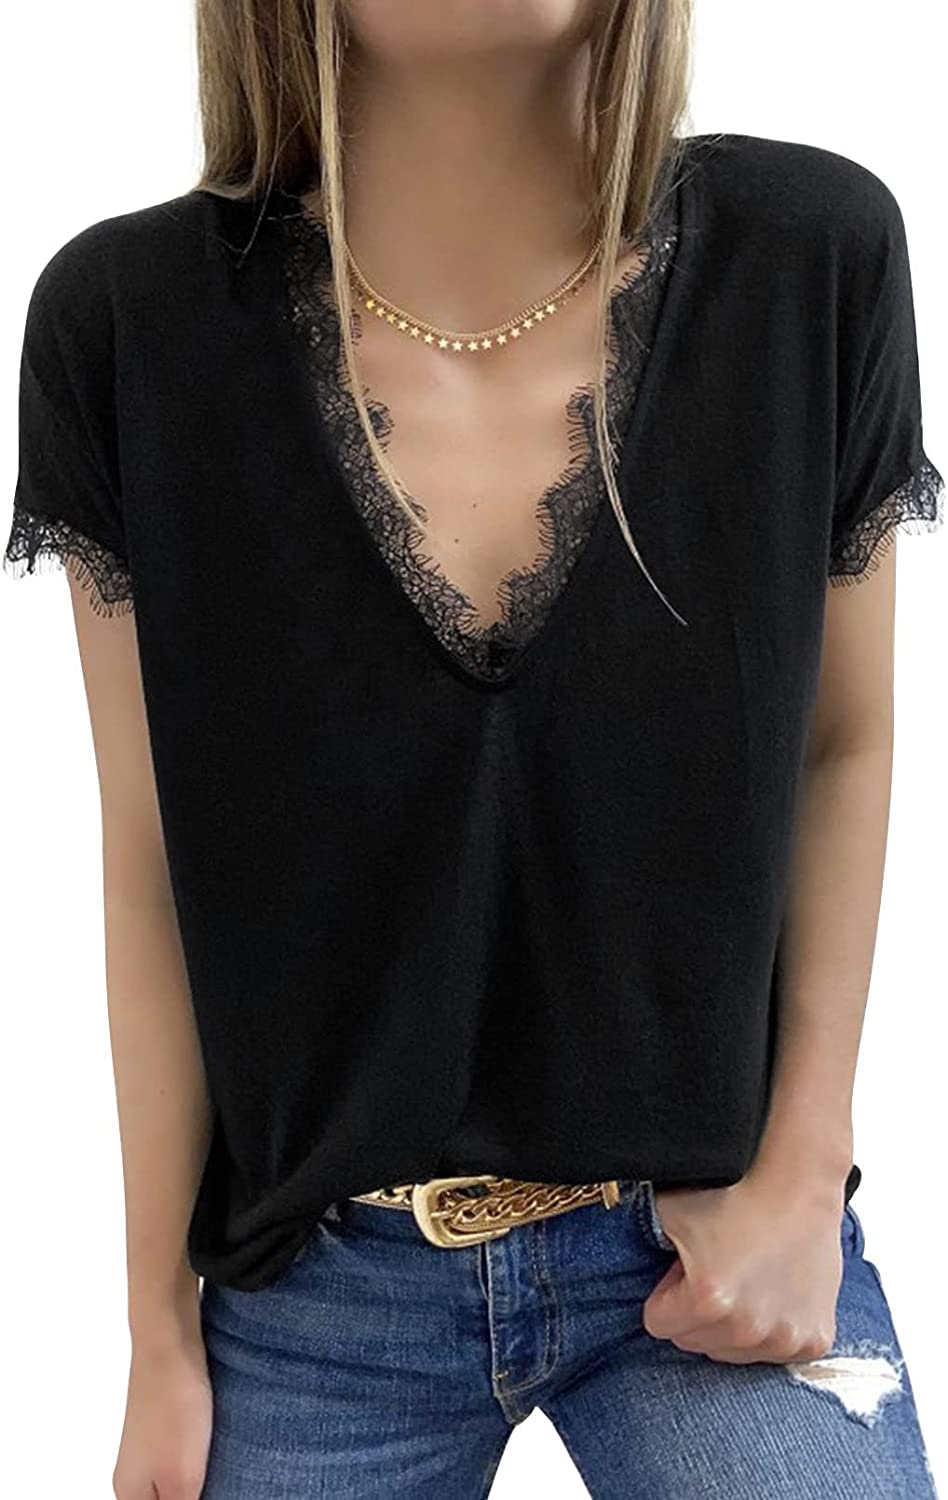 Ecrocoo Women's V Neck Lace Trim Tops Casual Summer Short Sleeve Loose Fit T Shirts Blouses